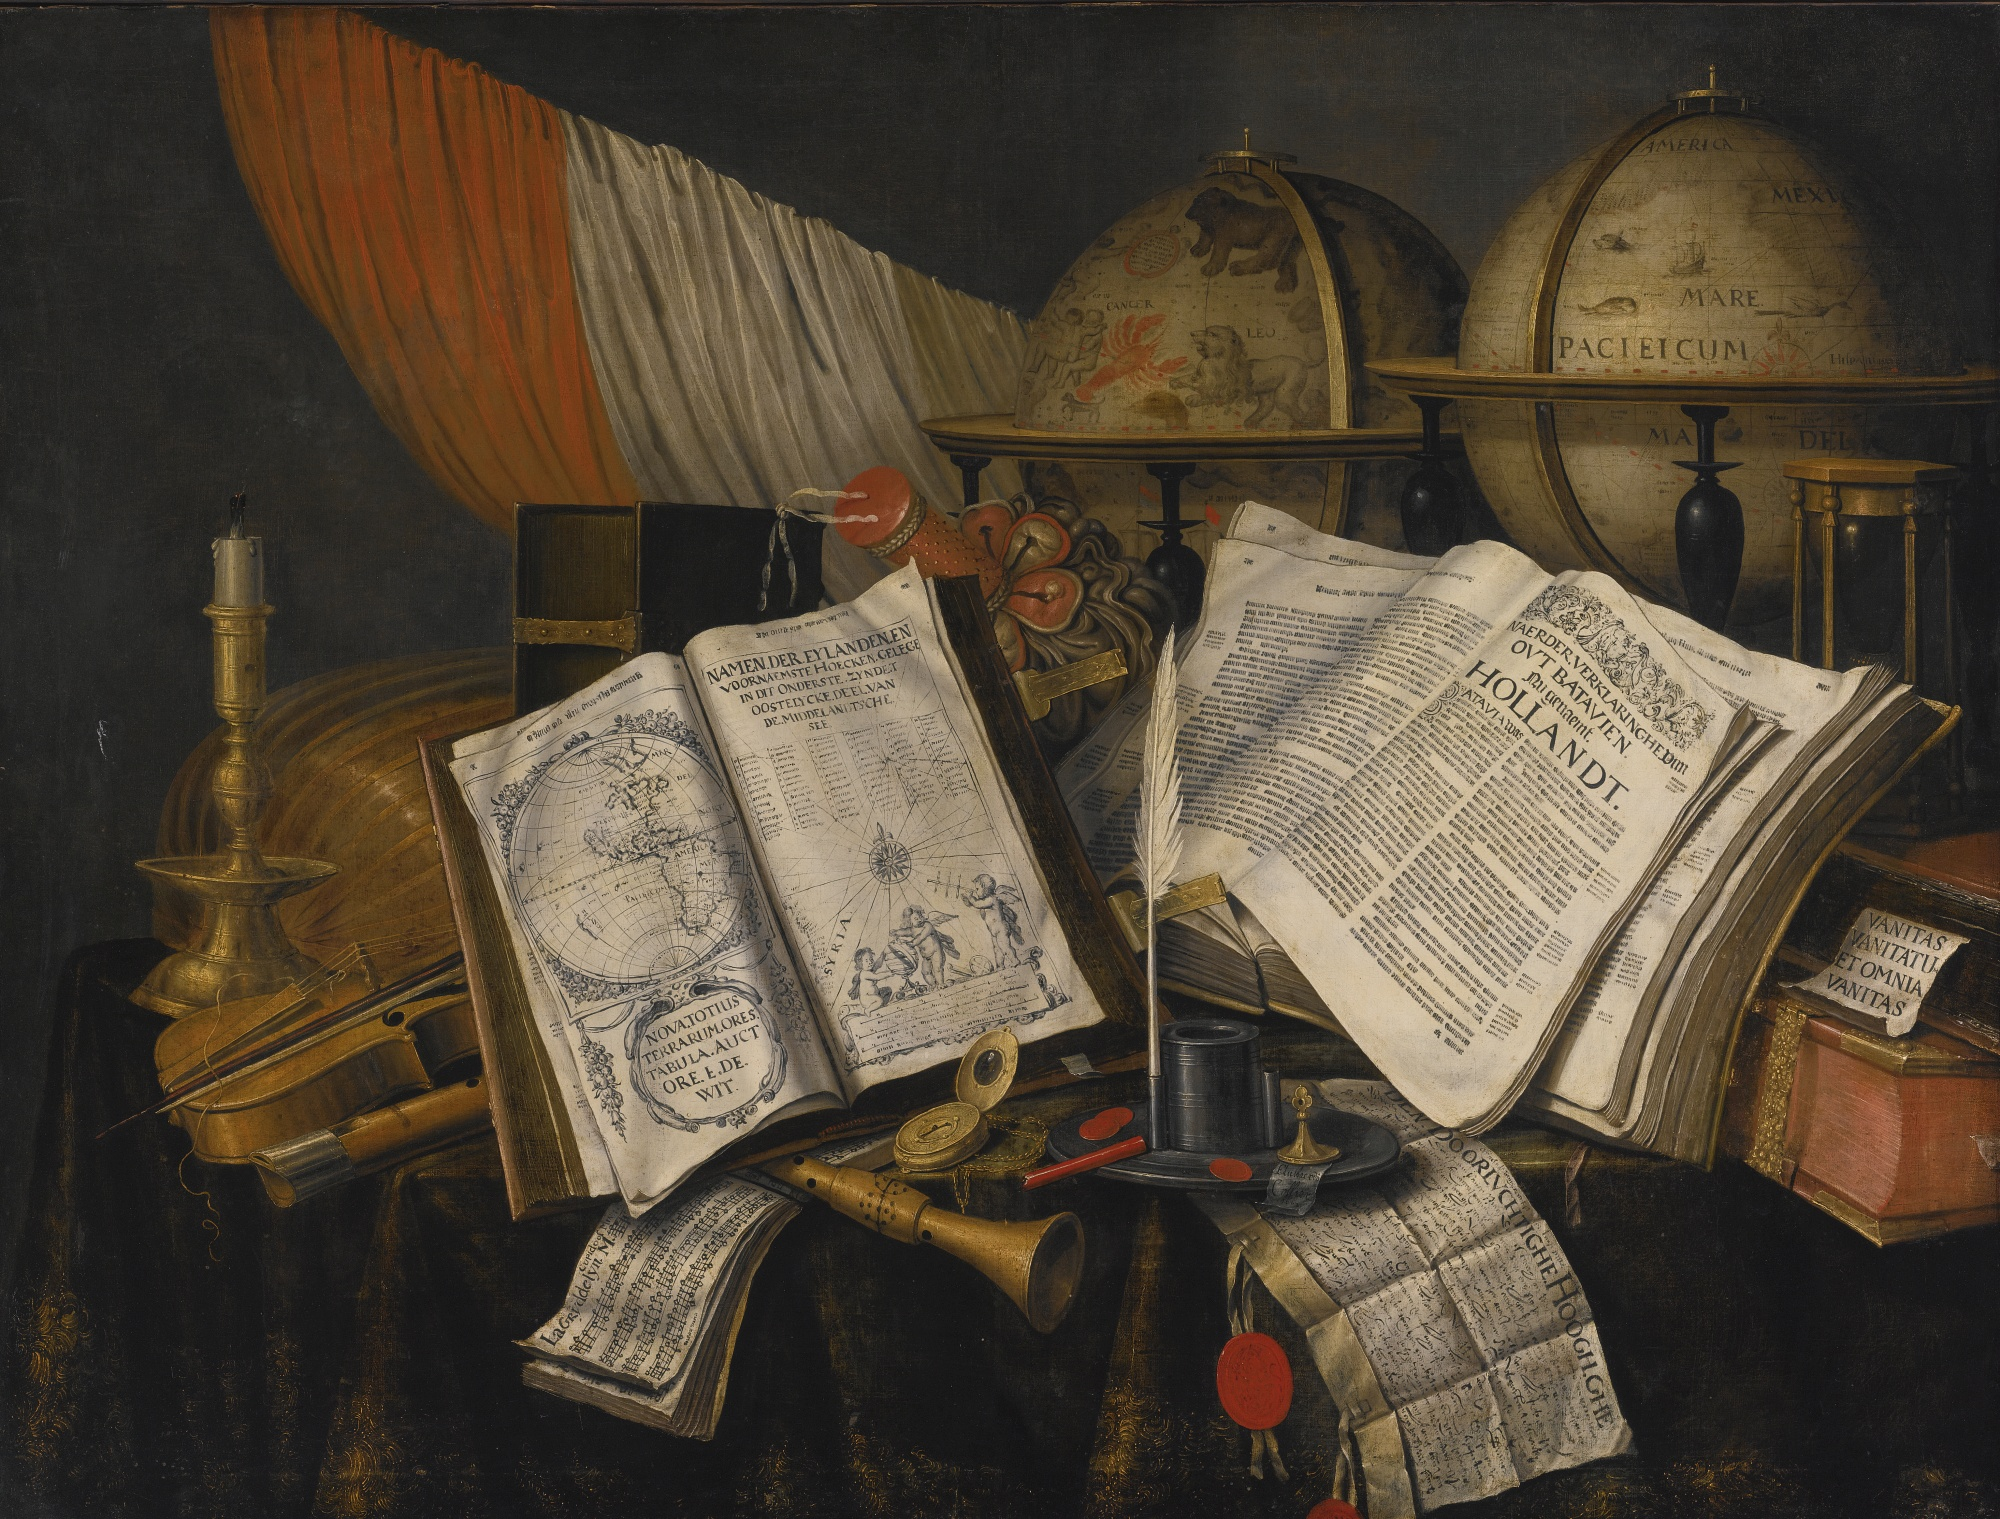 Evert Collier, Vanitas Still Life with a Candlestick, Musical Instruments, Dutch Books, a Writing Set, an Astrological and a Terrestial Globe and an Hourglass, All on a Draped Table, 1662, private collection. Wikimedia Commons (public domain).